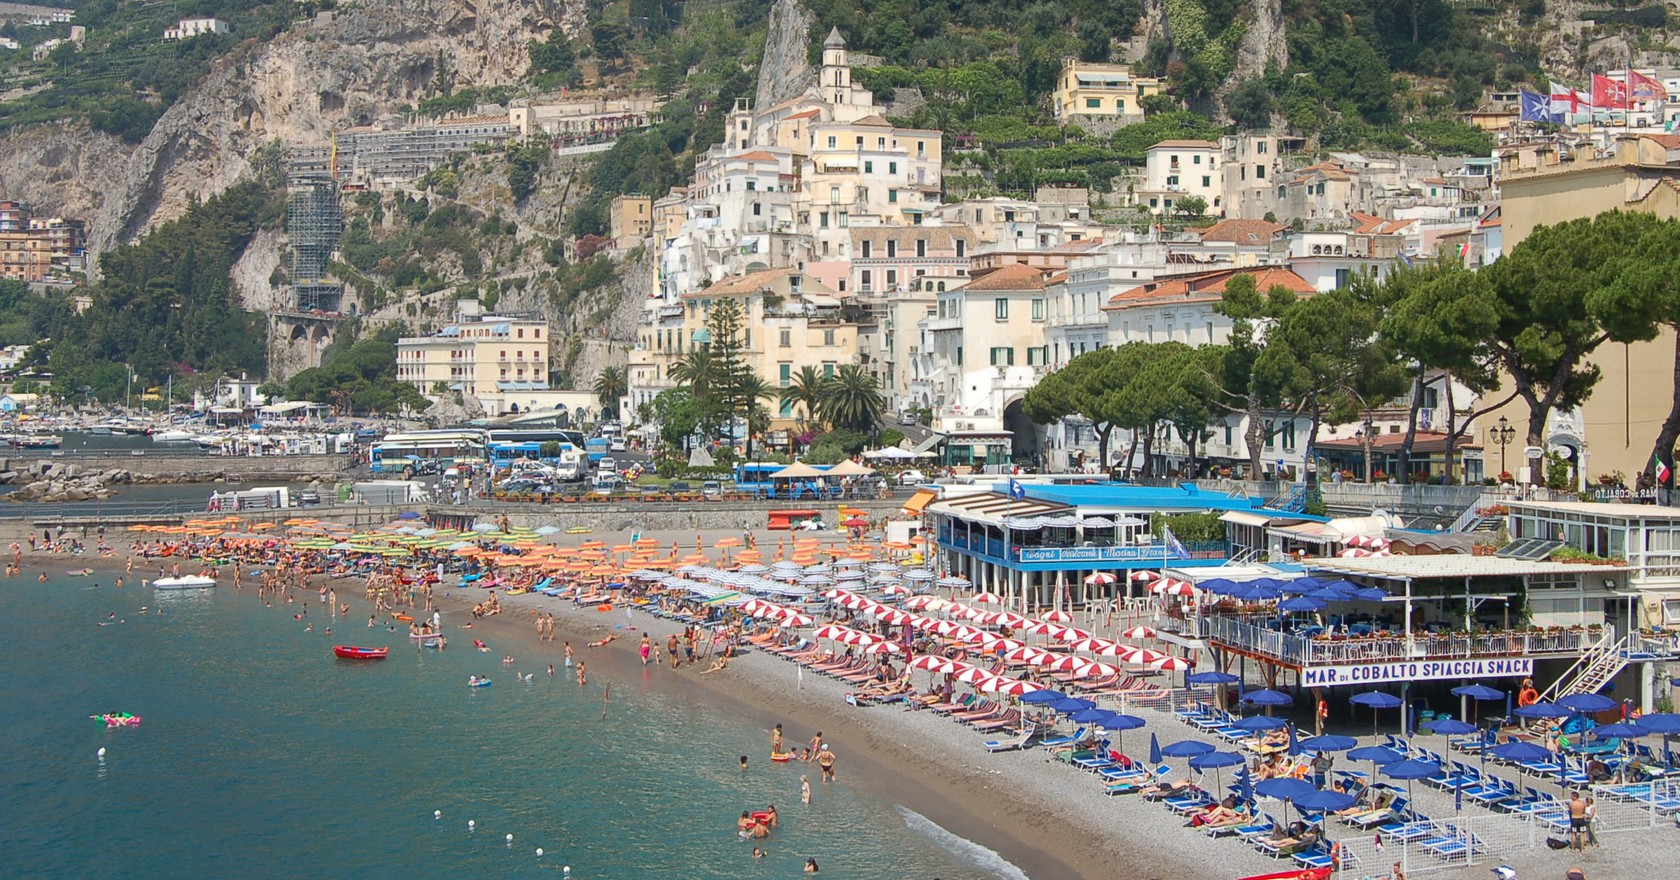 Amalfi Joeross Flickr